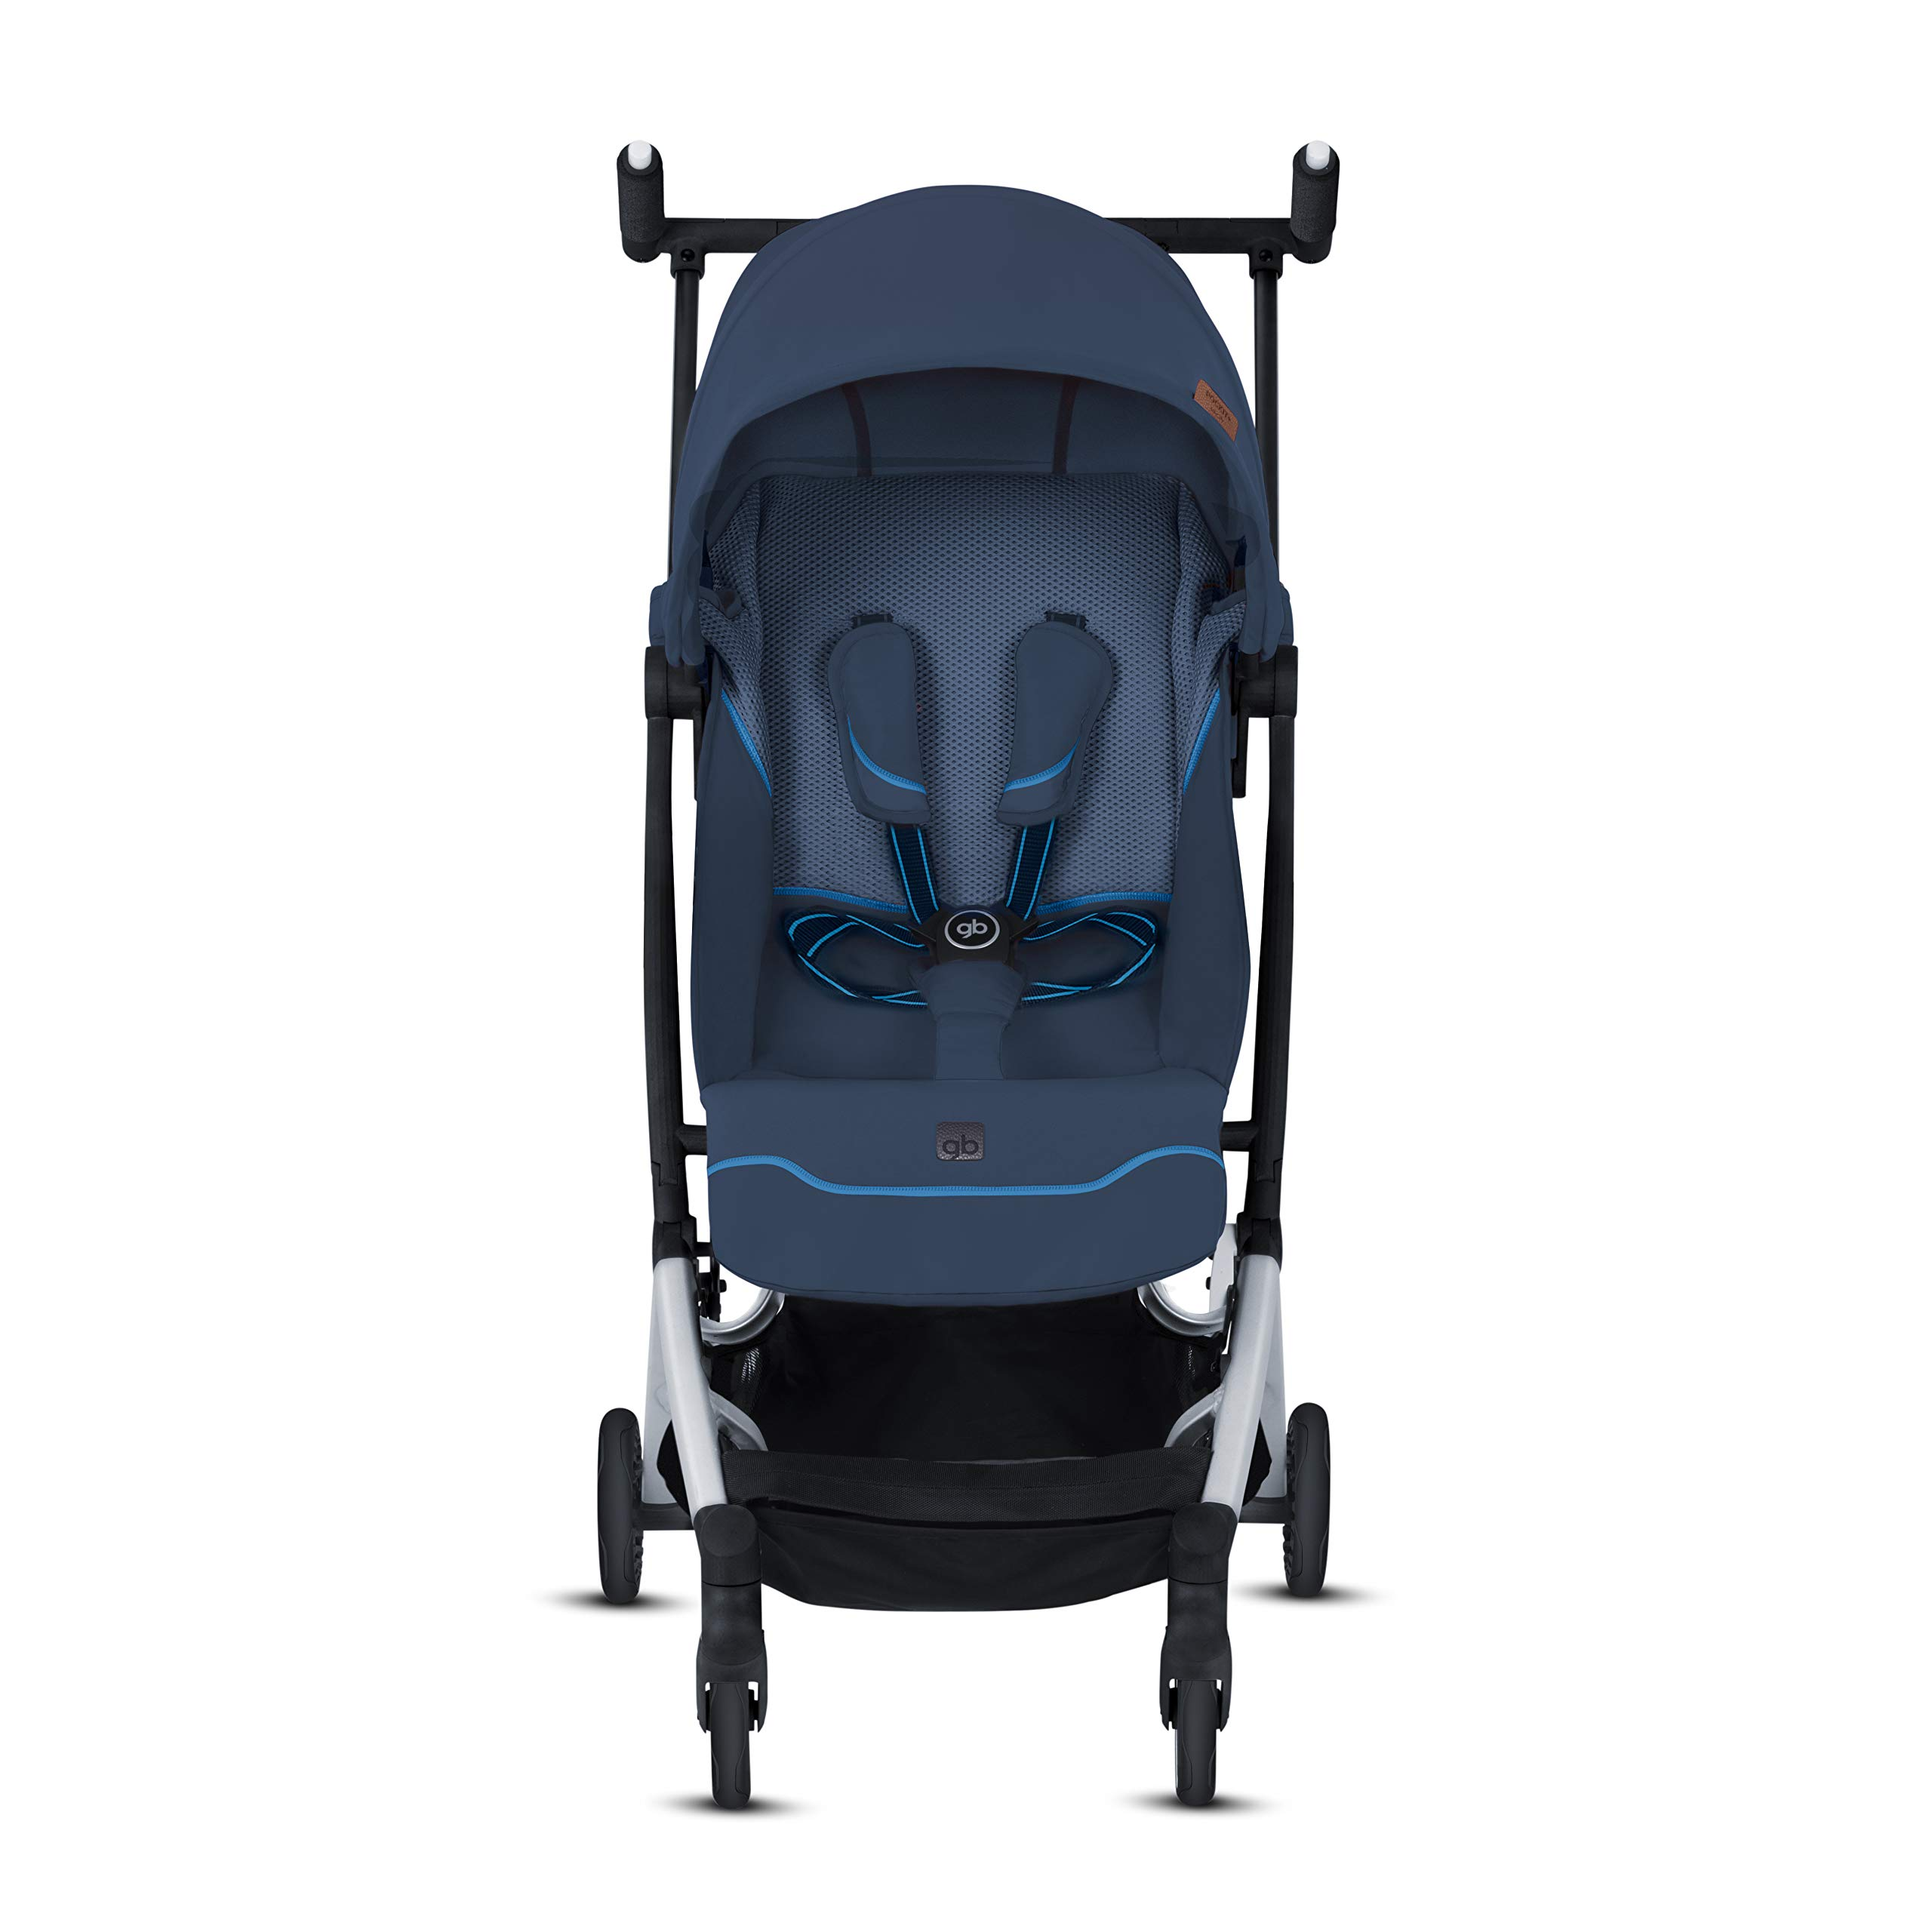 GB Pockit+ All-City Stroller - Night Blue by gb (Image #2)